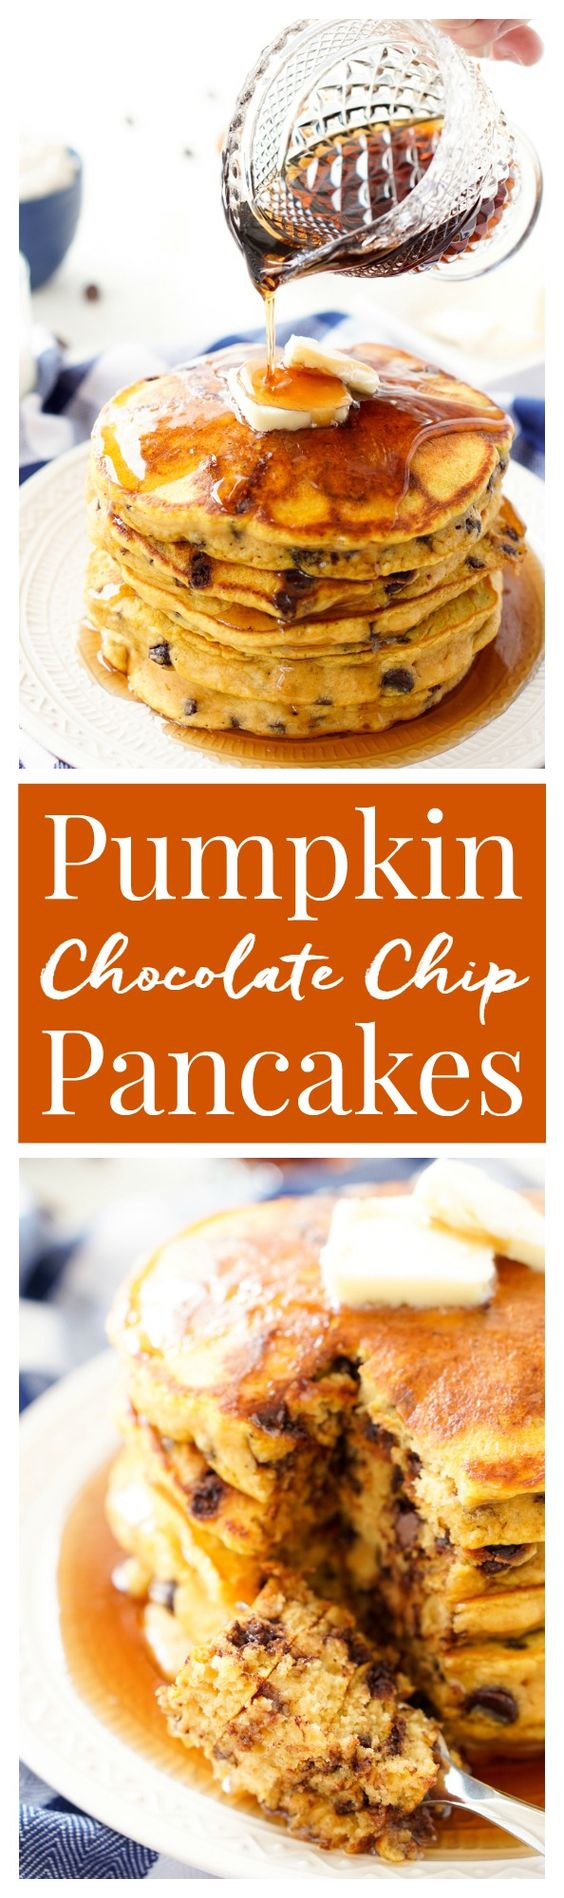 Chocolate chip pancakes, Pumpkin chocolate chips and Pancakes on ...